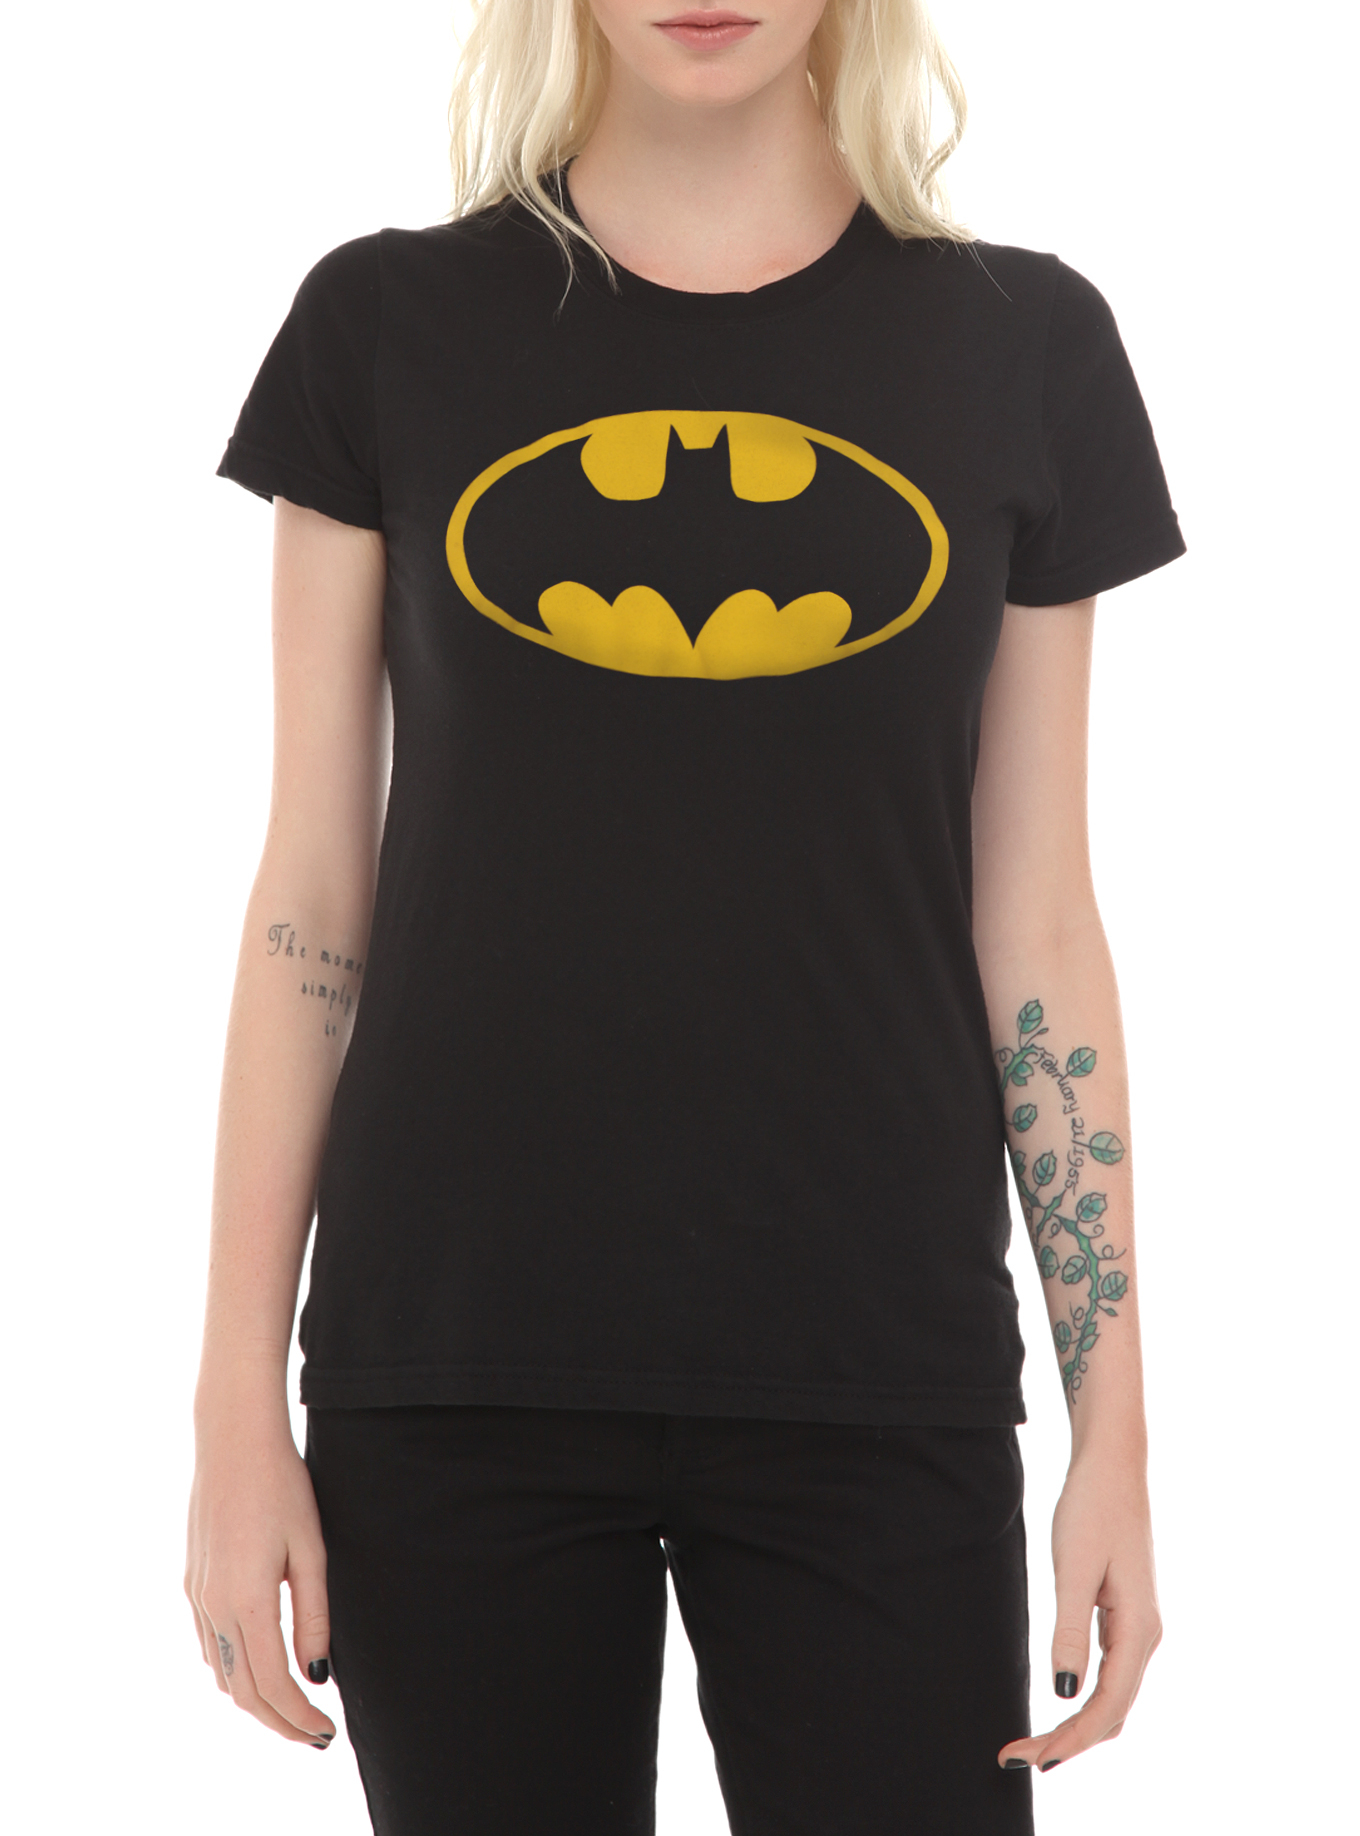 DC Comics Batman Logo Girls T-Shirt | Hot Topic